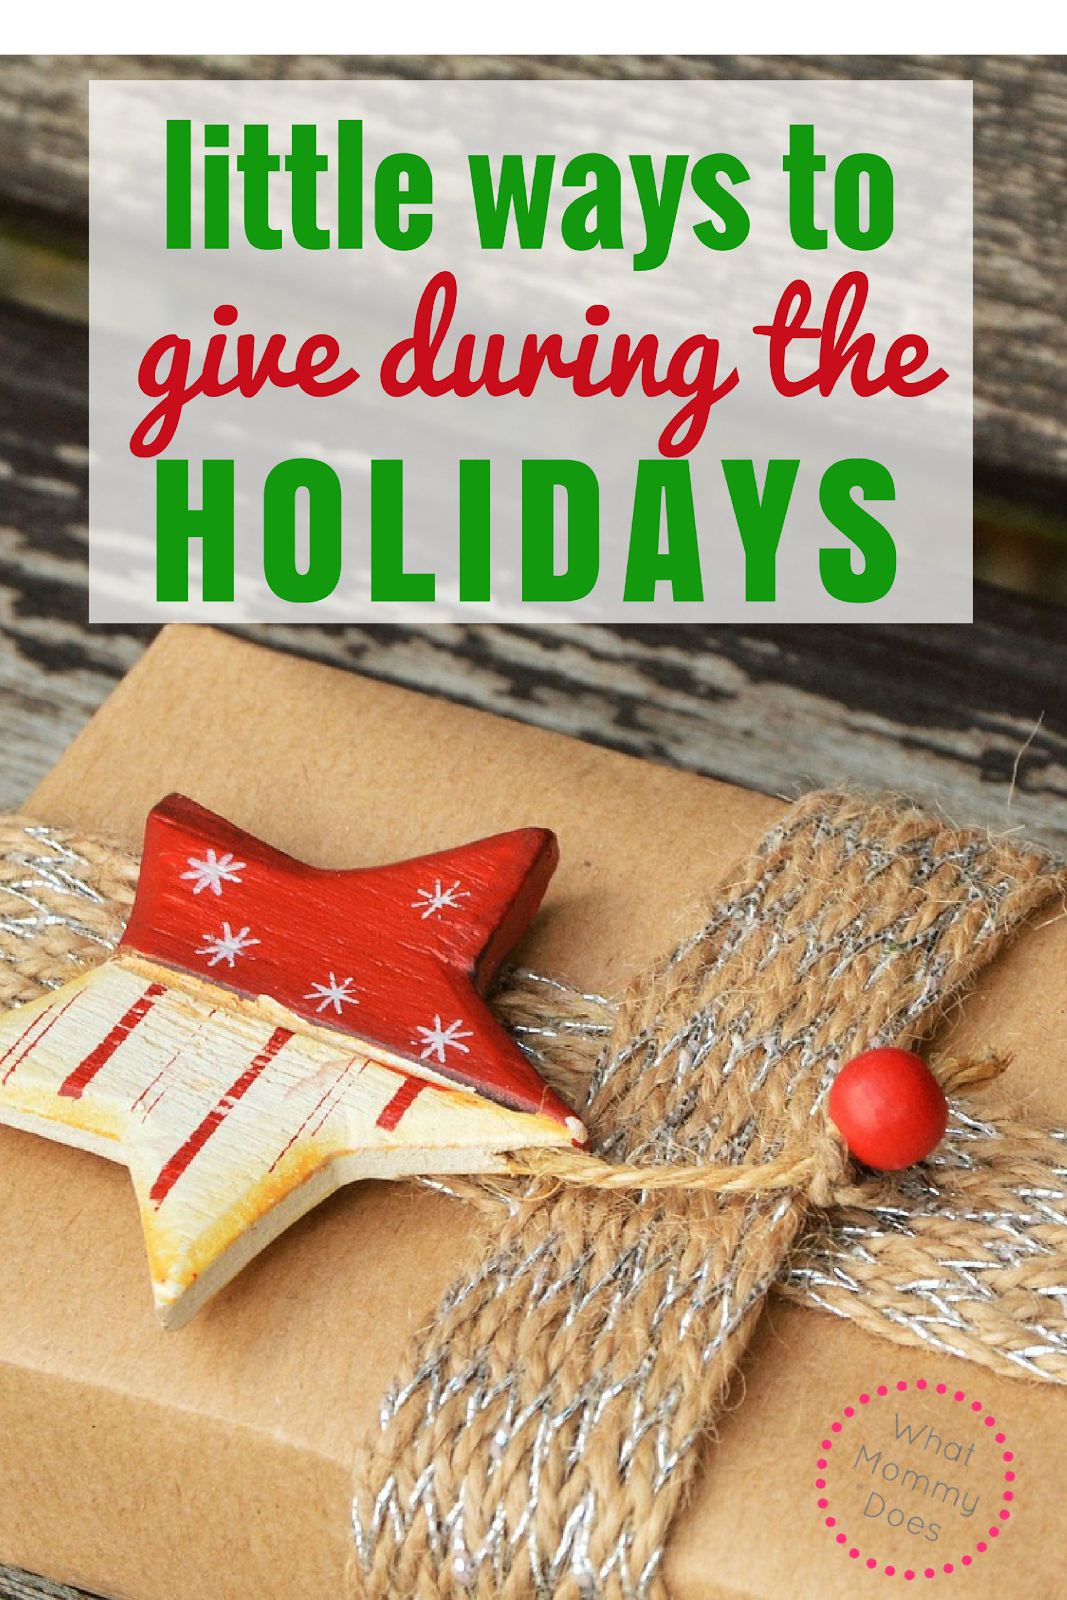 Little Ways to Give during the Holidays - These easy ways to give back at Christmas are perfect for families want to help their community. Donate to charity or do something just as rewarding - ideas are here!